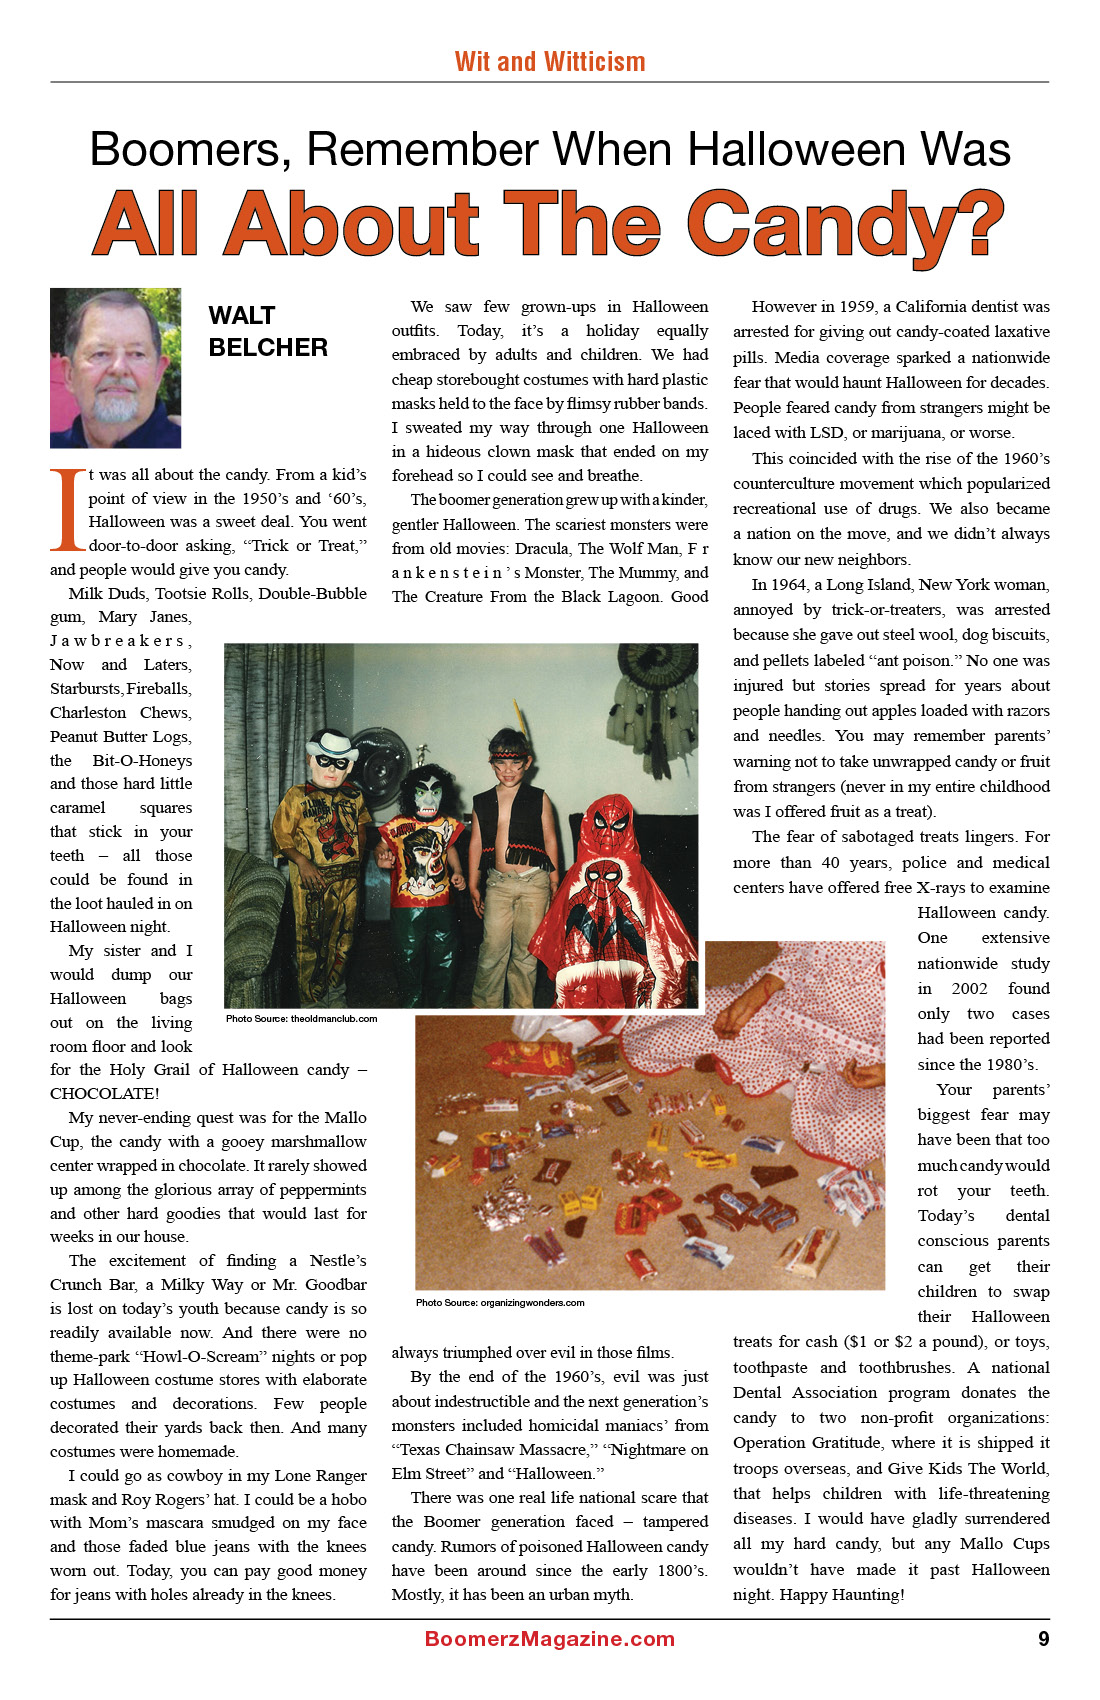 2018 October Boomerz Magazine Page 9 Walt Belcher Remember when Halloween was All About The Candy